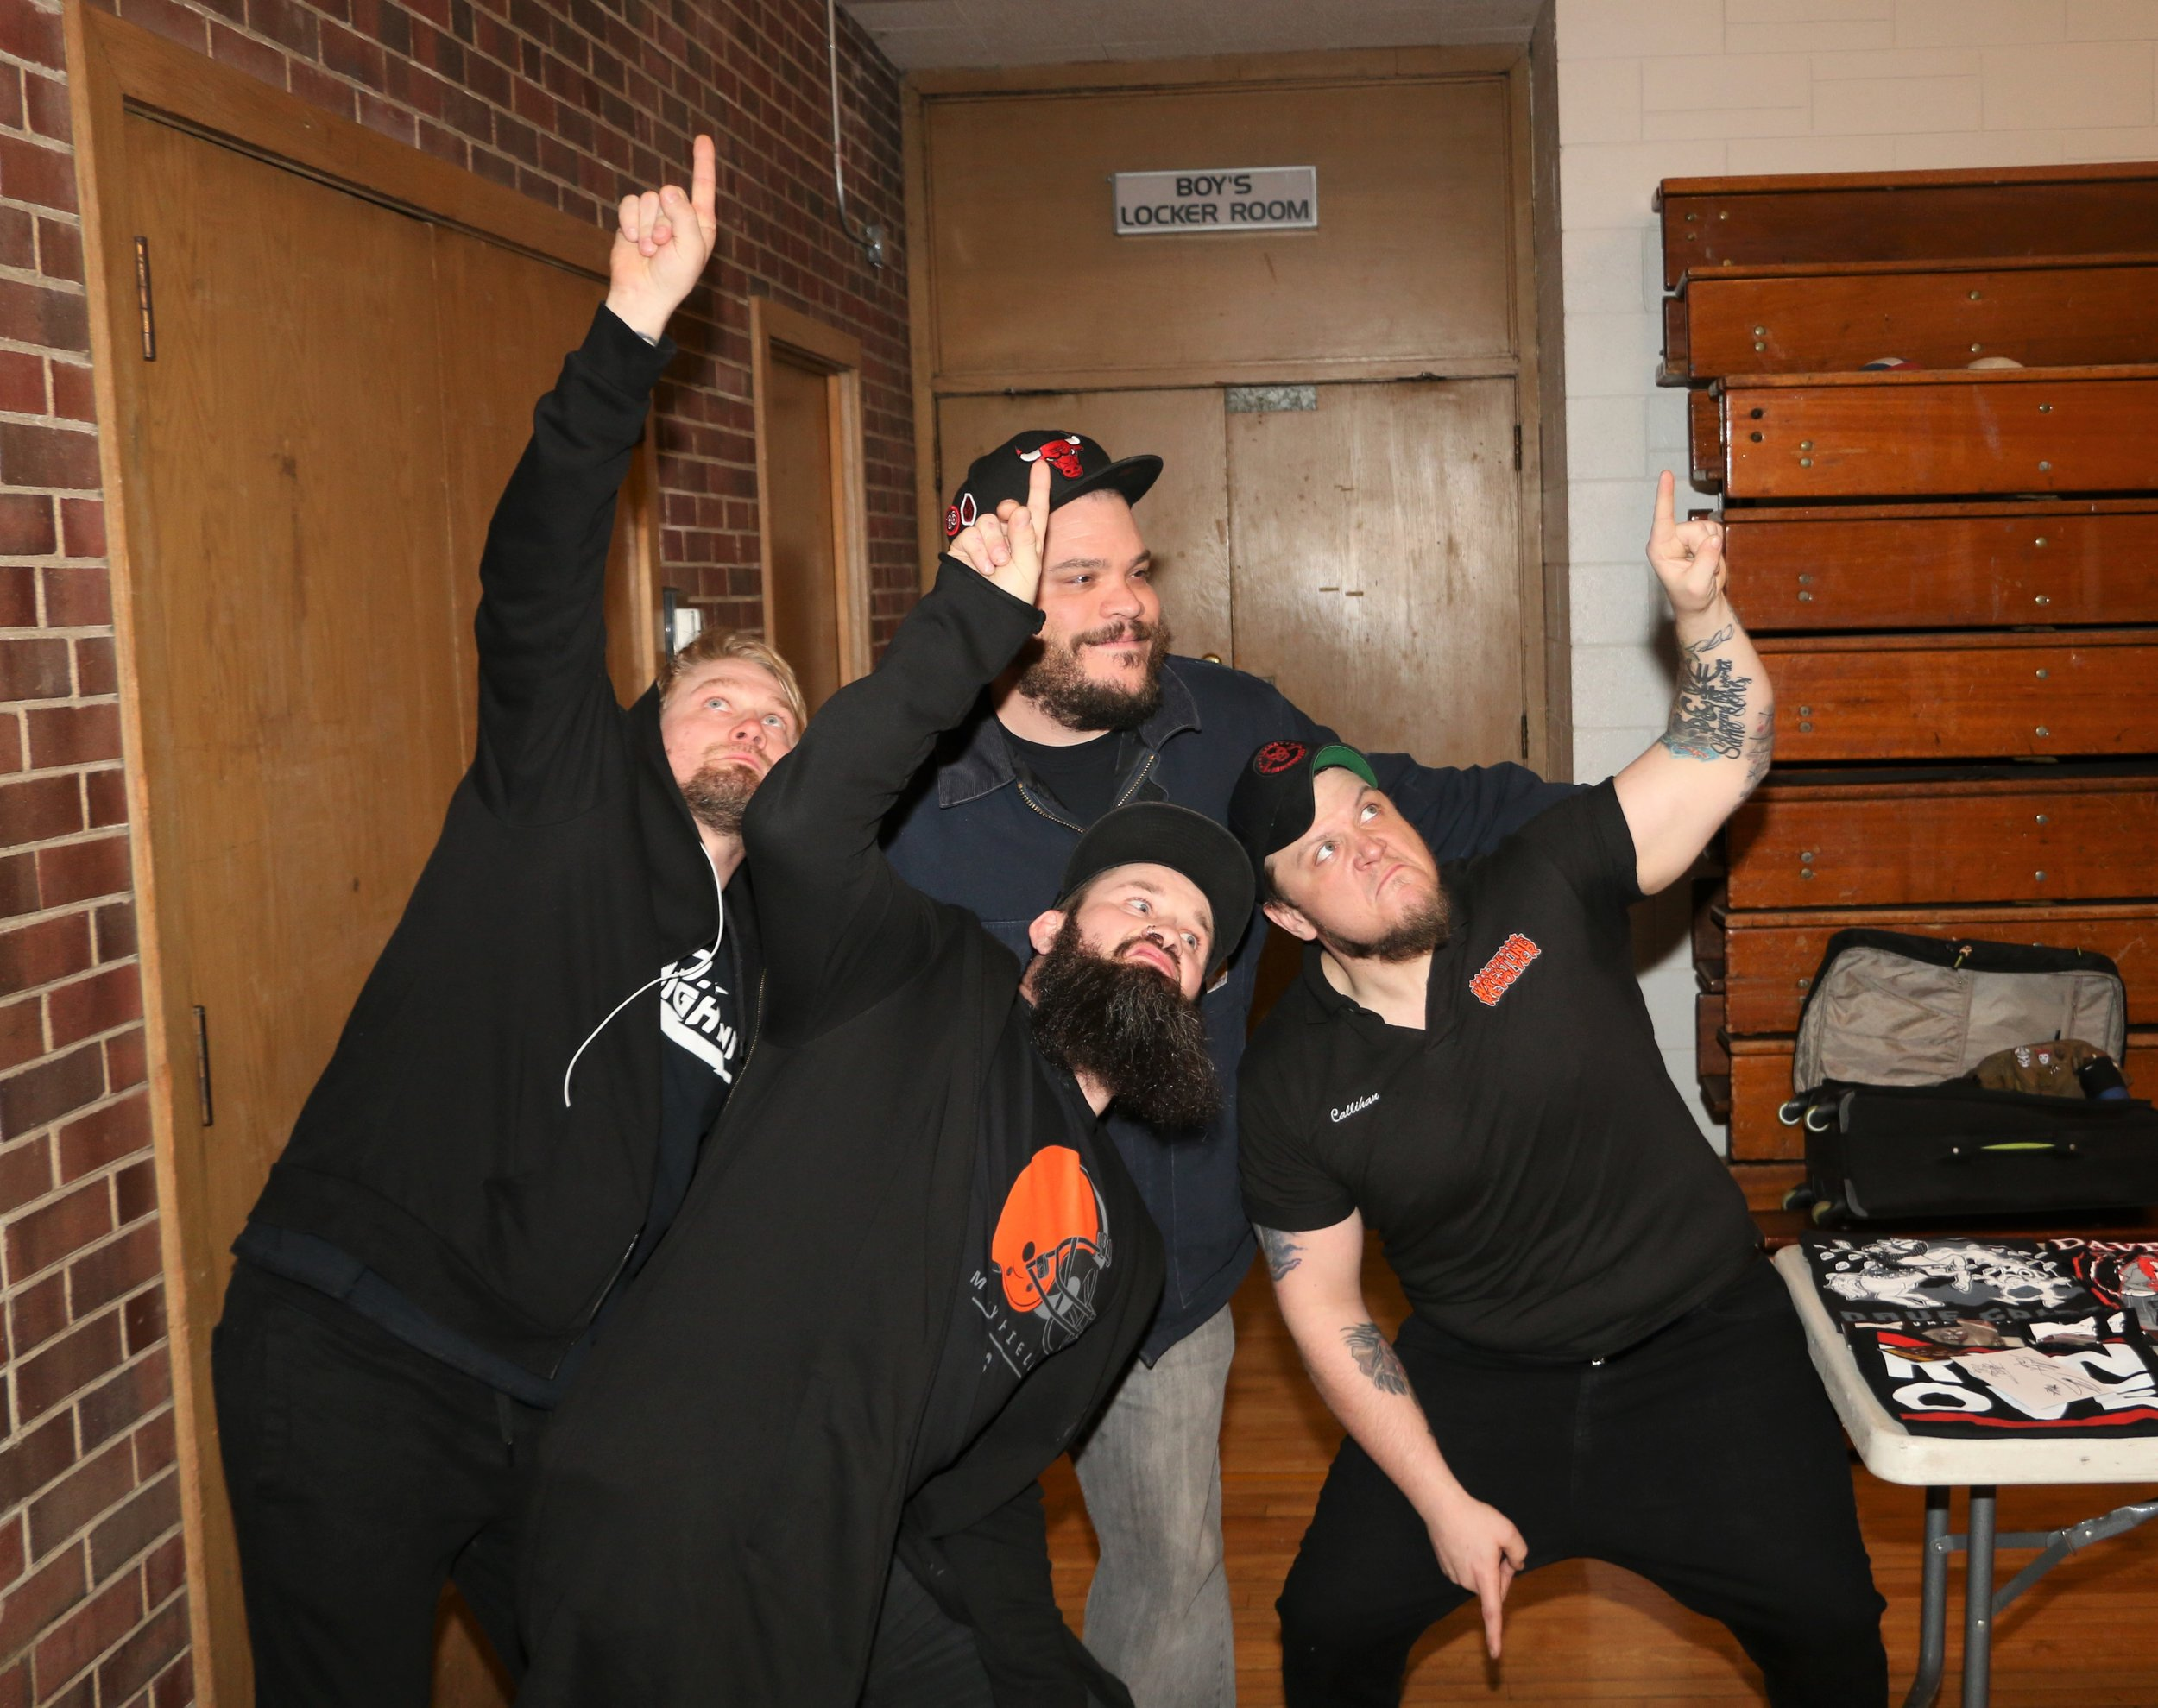 Members of oVe, Jake Crist, from left, Dave Crist and Sami Callihan, pose with a fan while doing a tribute to ECW legend Sabu during Warrior Wrestling 4 Fan Fest.  (Photo by Mike Pankow)